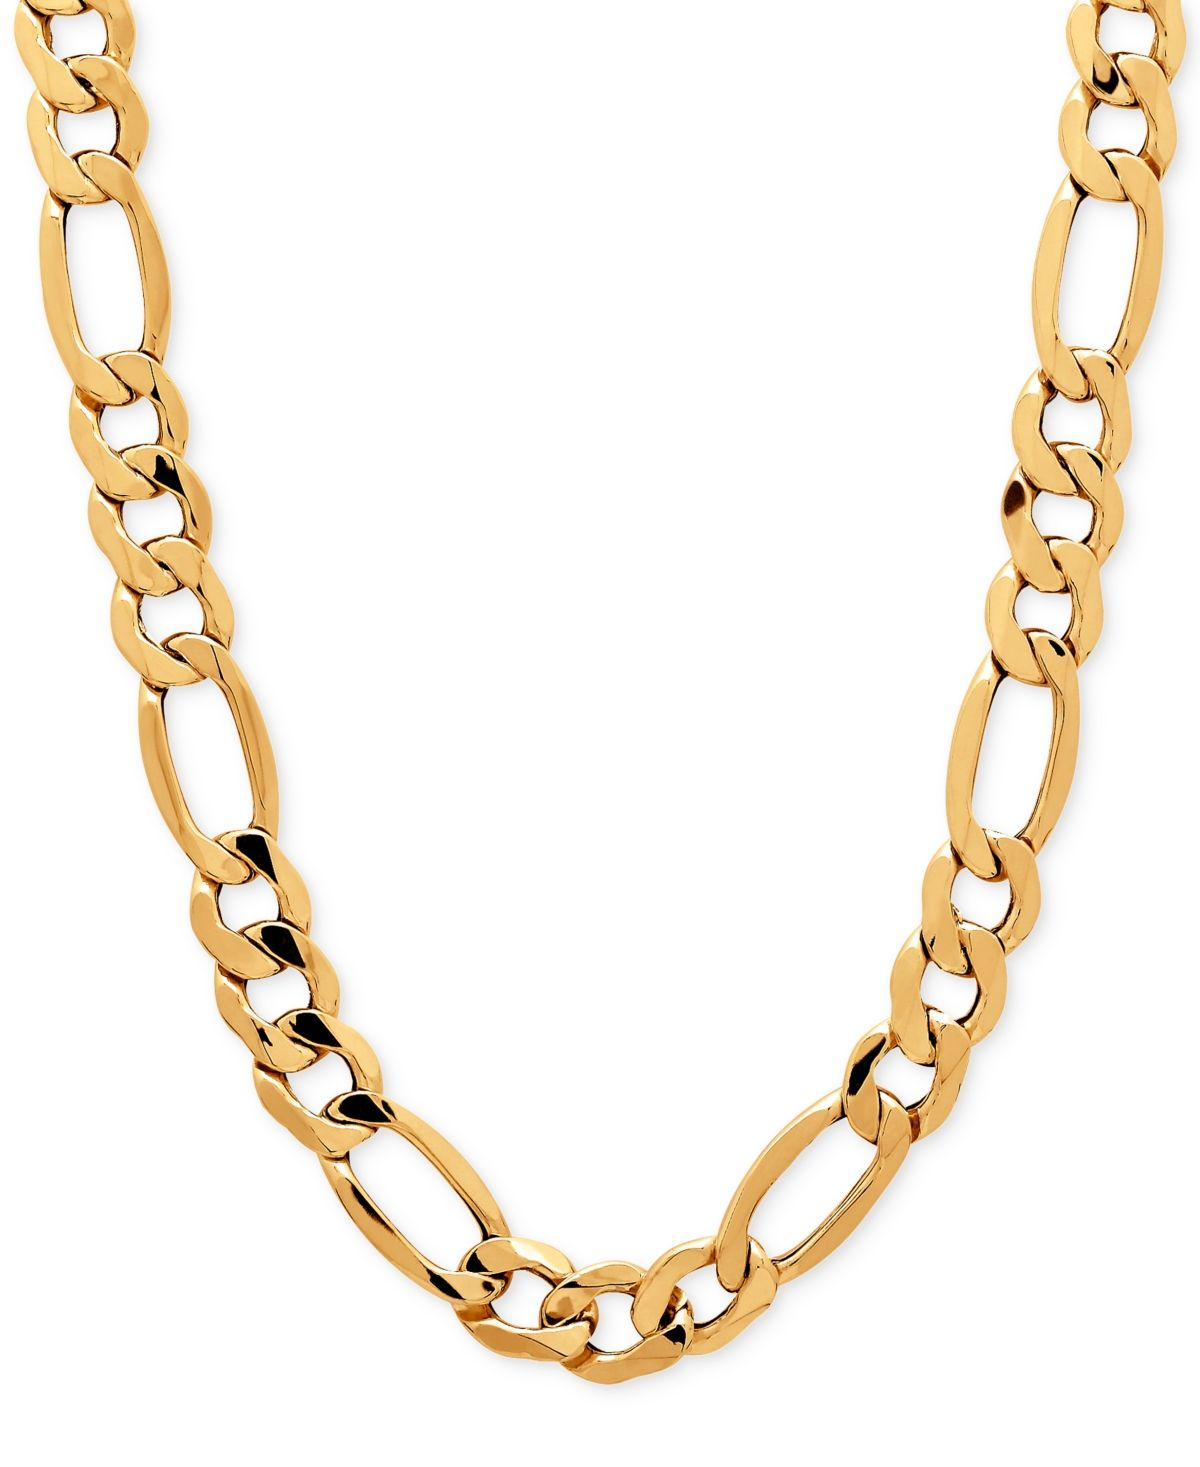 Made In Italy 10k Gold 22 Inch Chain Necklace Gold Necklace Chain Gold